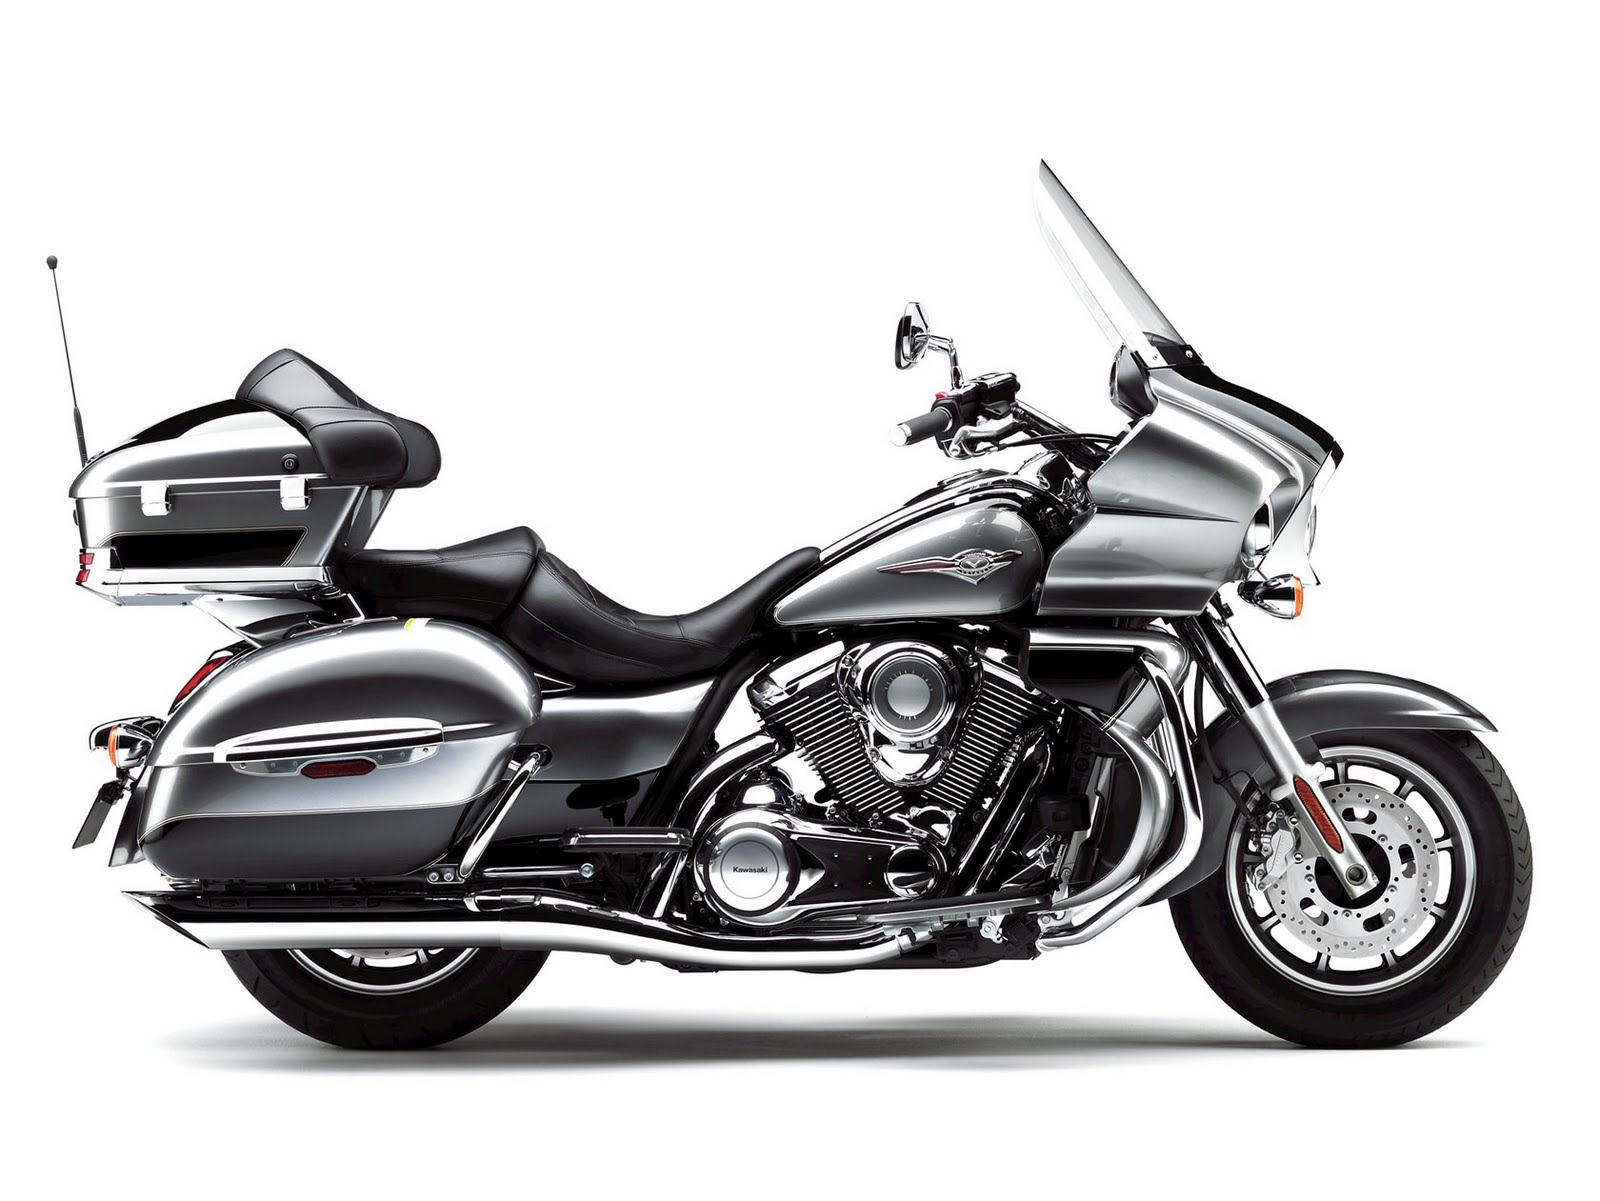 The Best Of Motorcycle  2010 Kawasaki Vulcan 1700 Voyager